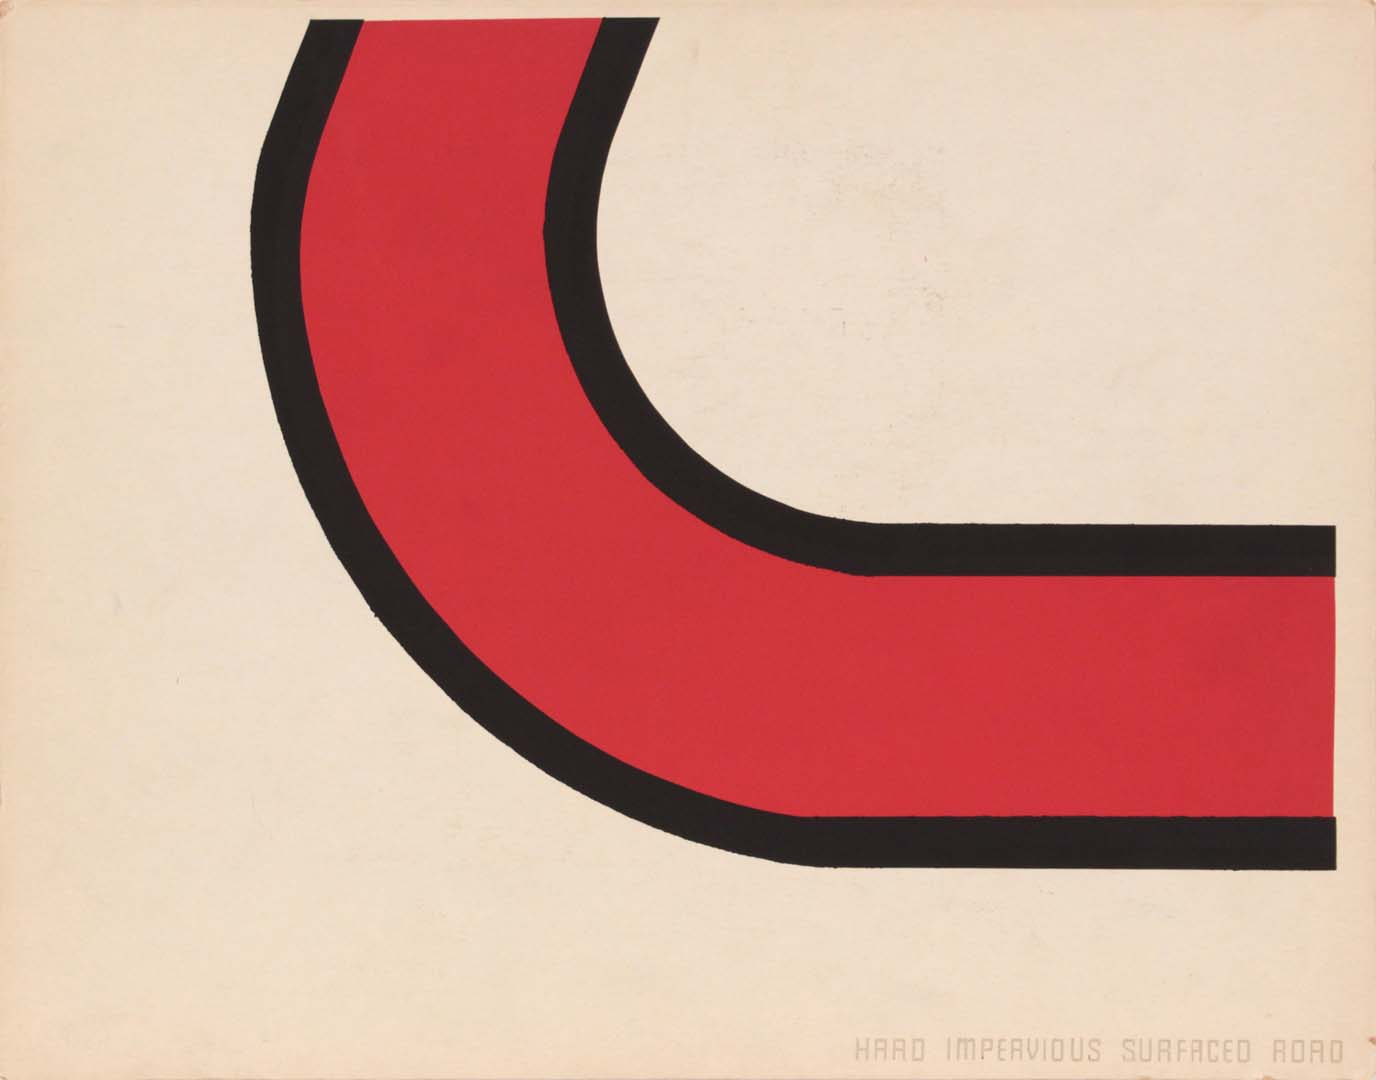 1944 Image 62 (Front Hard Impervious Surface Road) Silkscreen 11 x 14